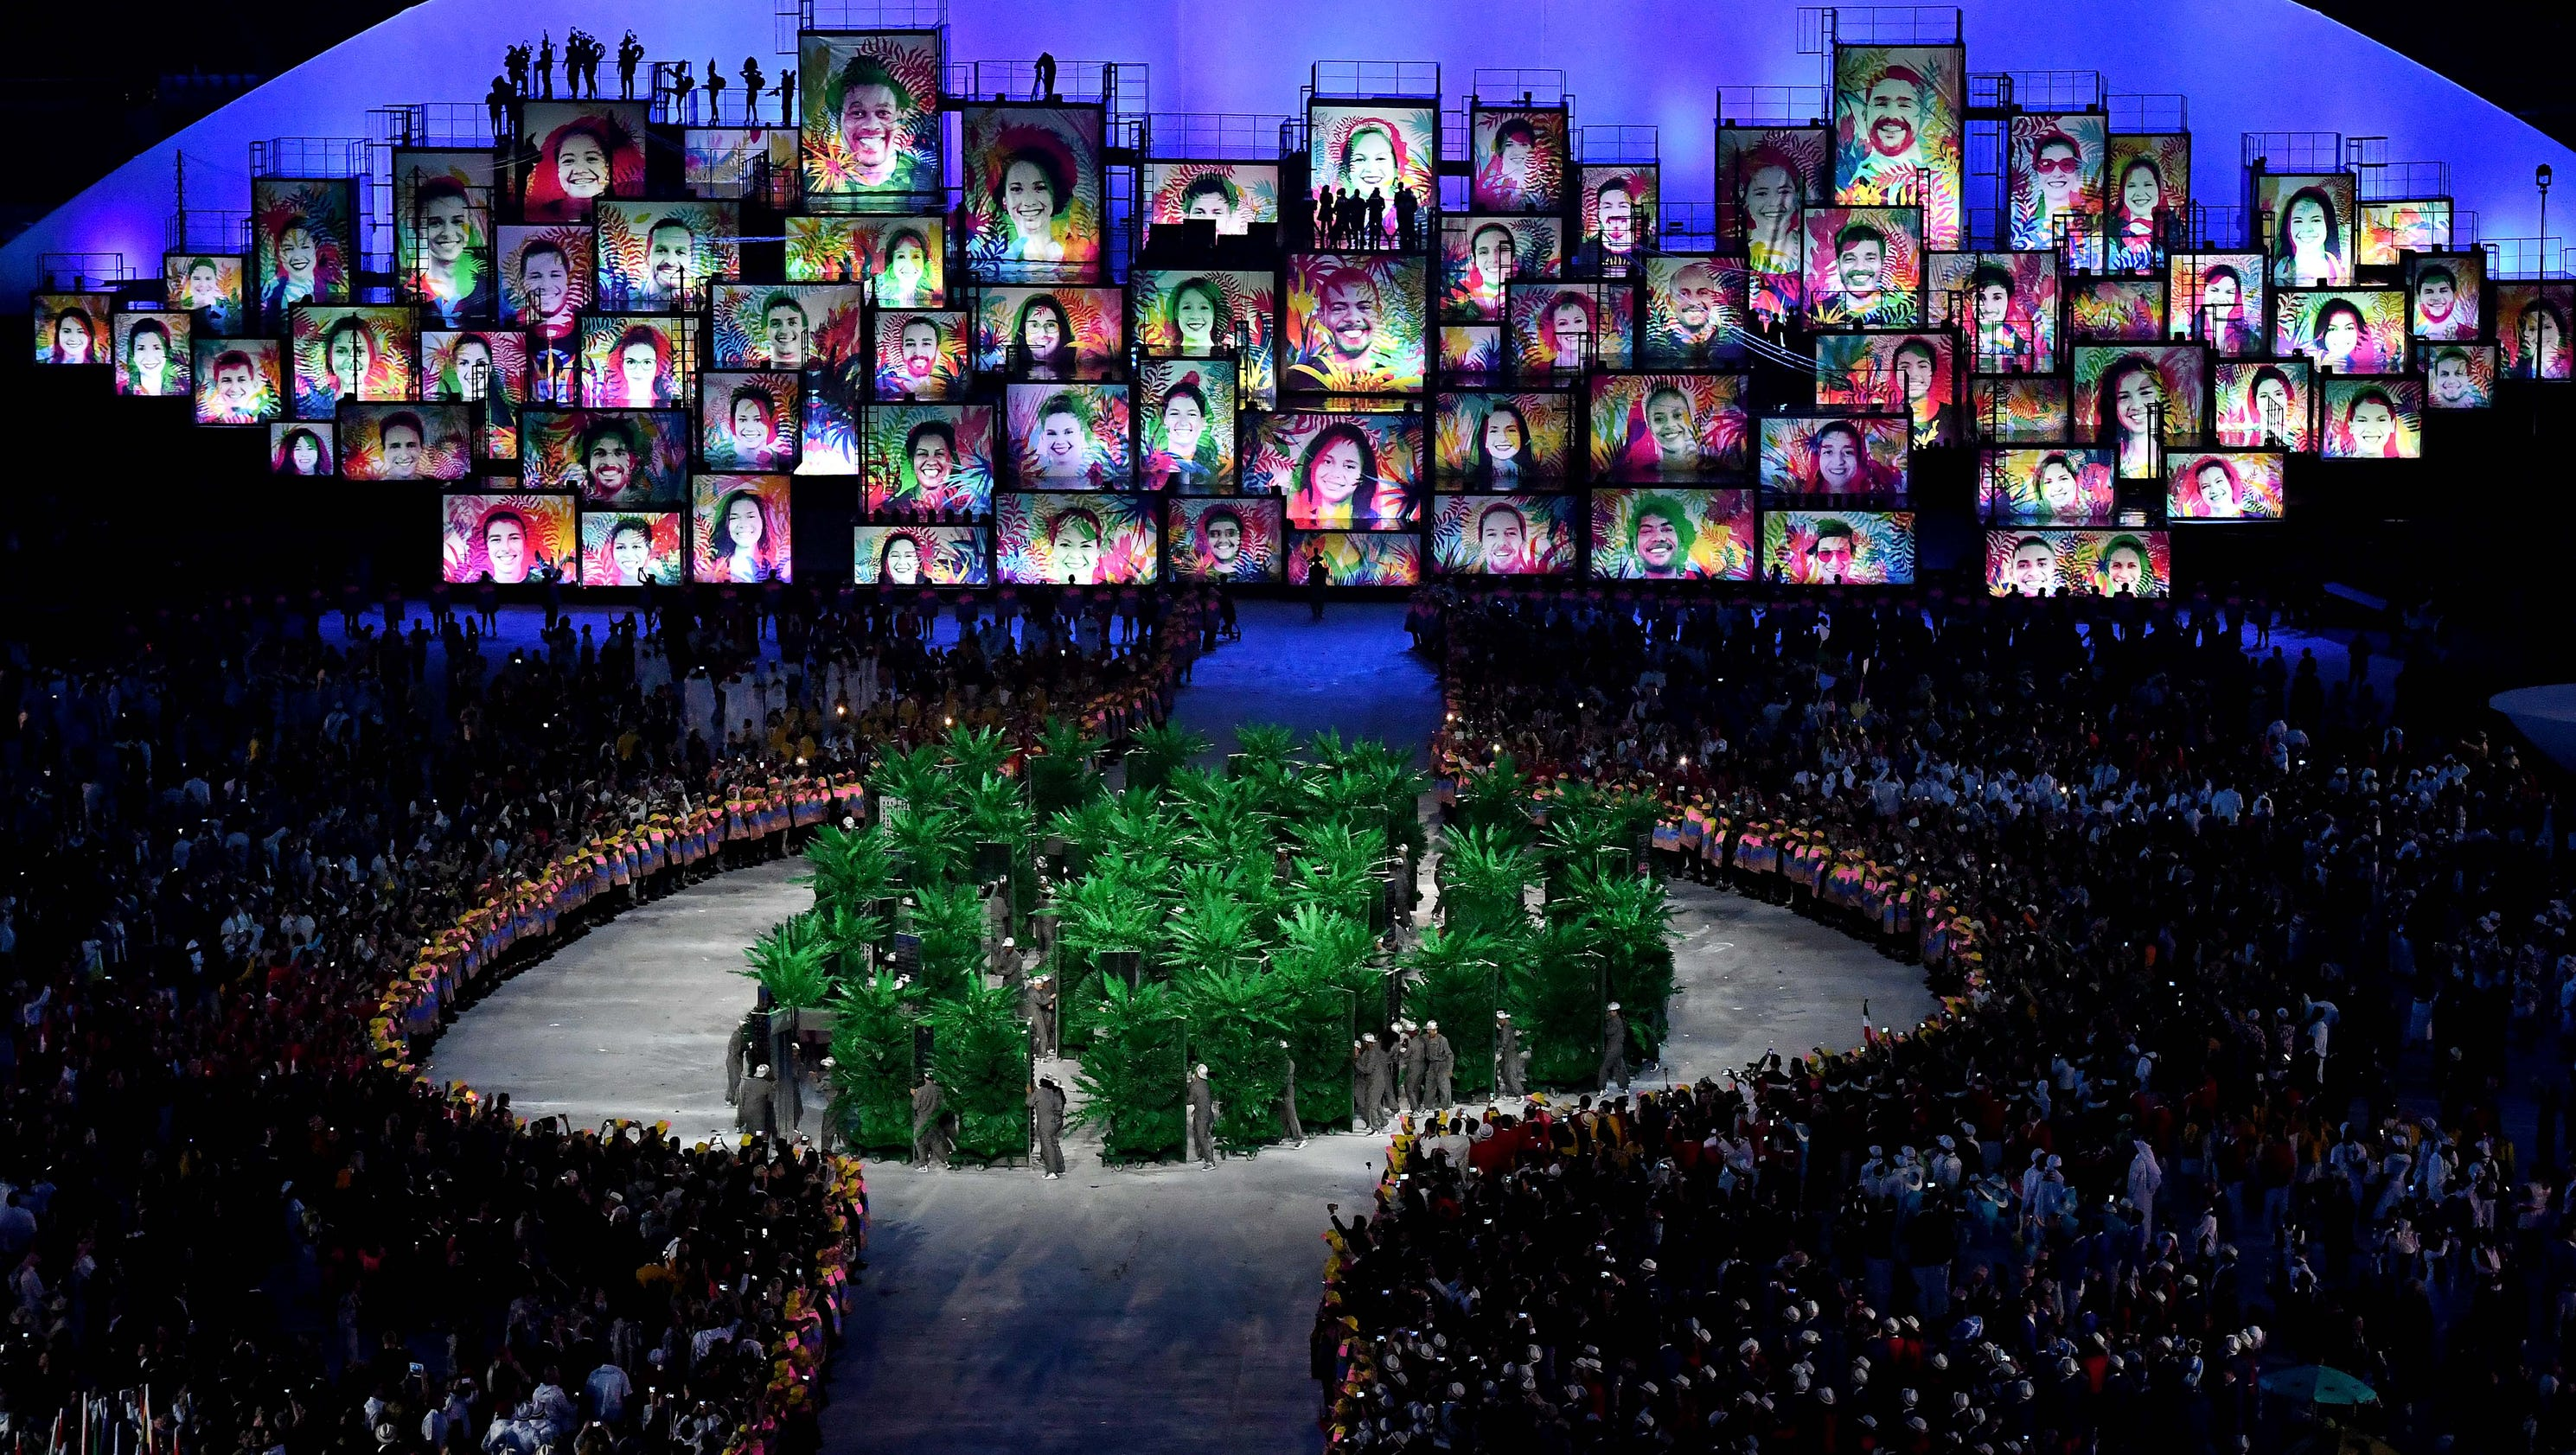 Nbc Olympics Opening Ceremony Full